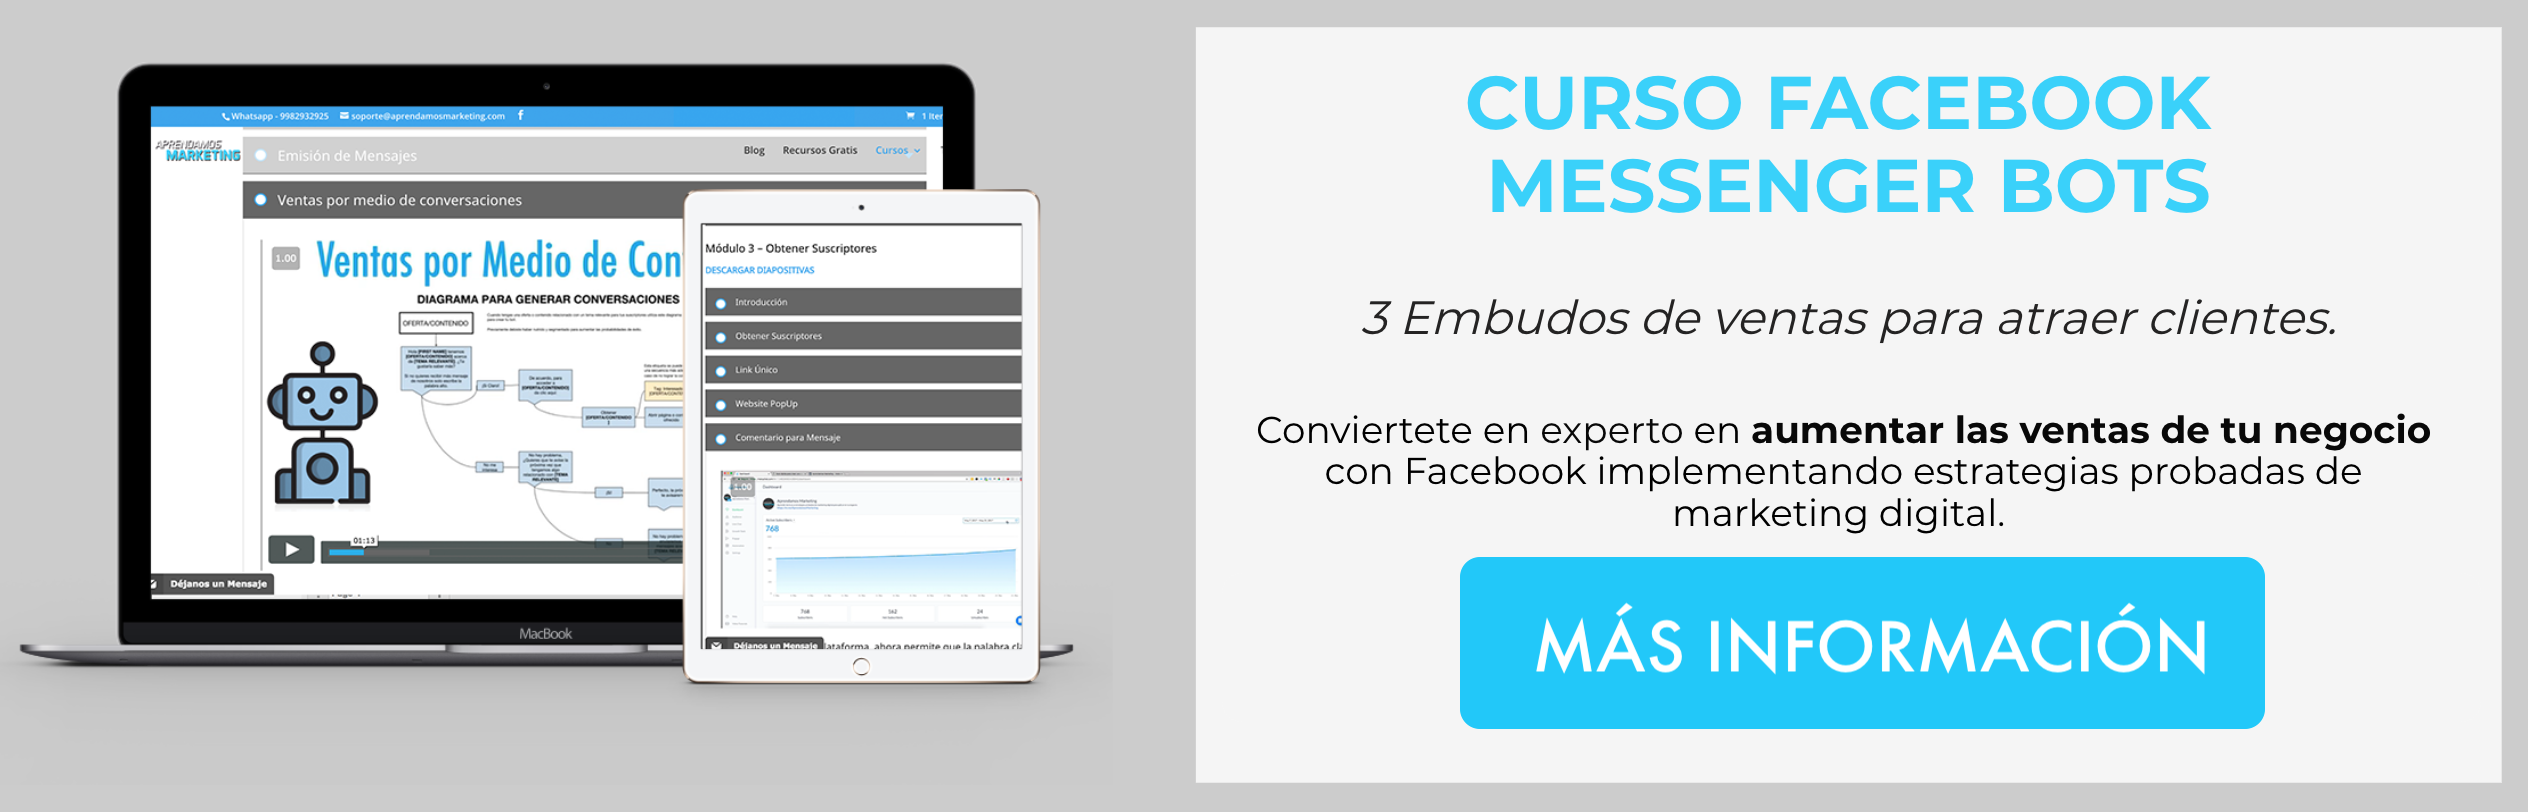 CTA-Blog-Curso Facebook Messenger Bots